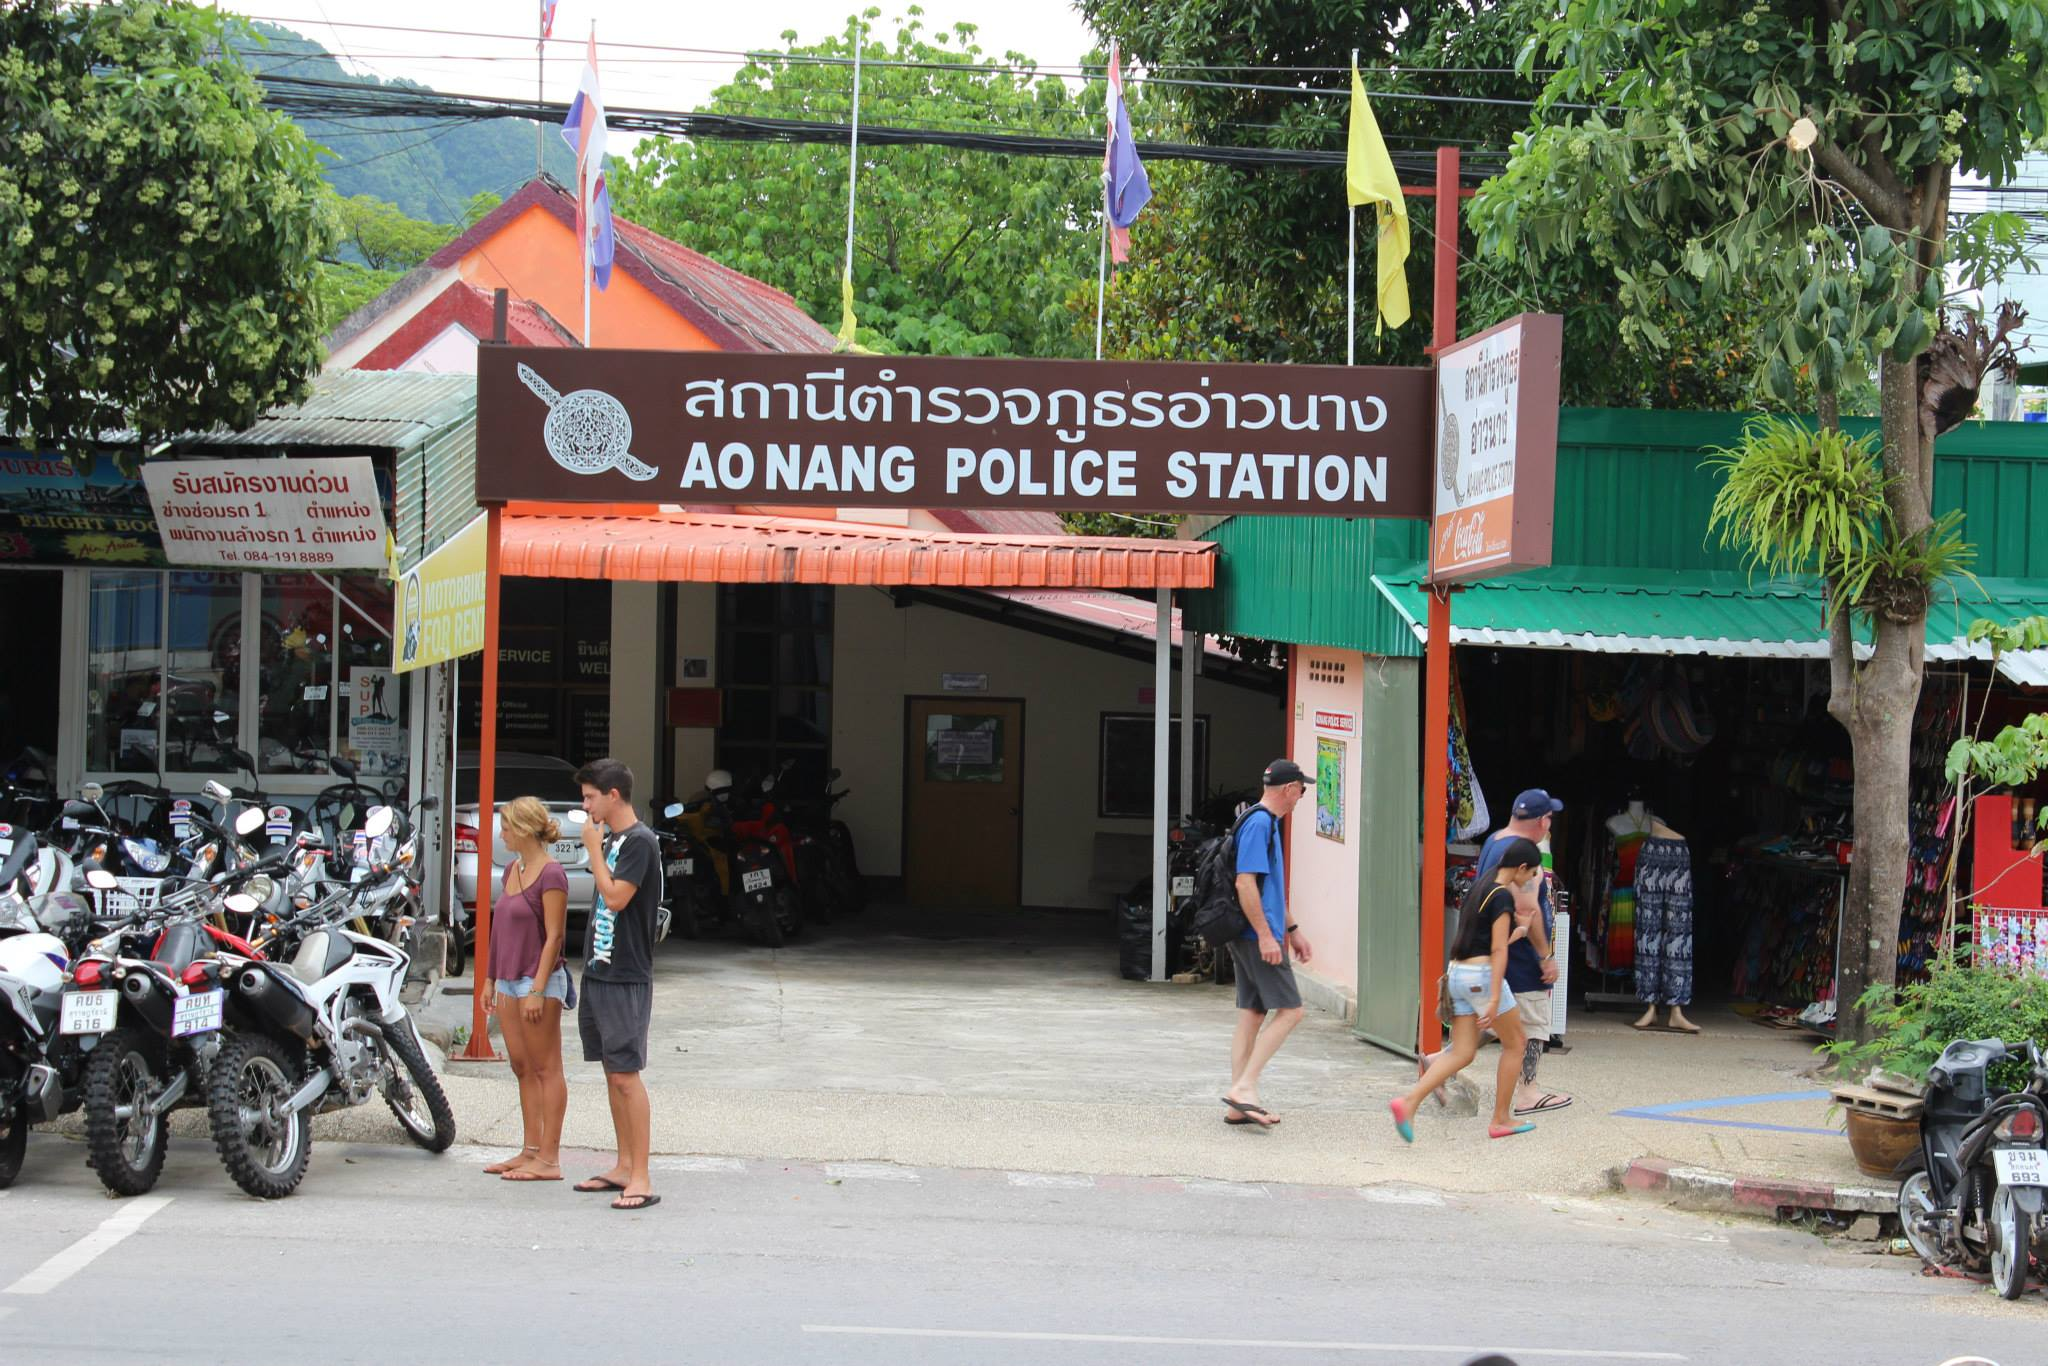 The Police Station in Ao Nang, Thailand